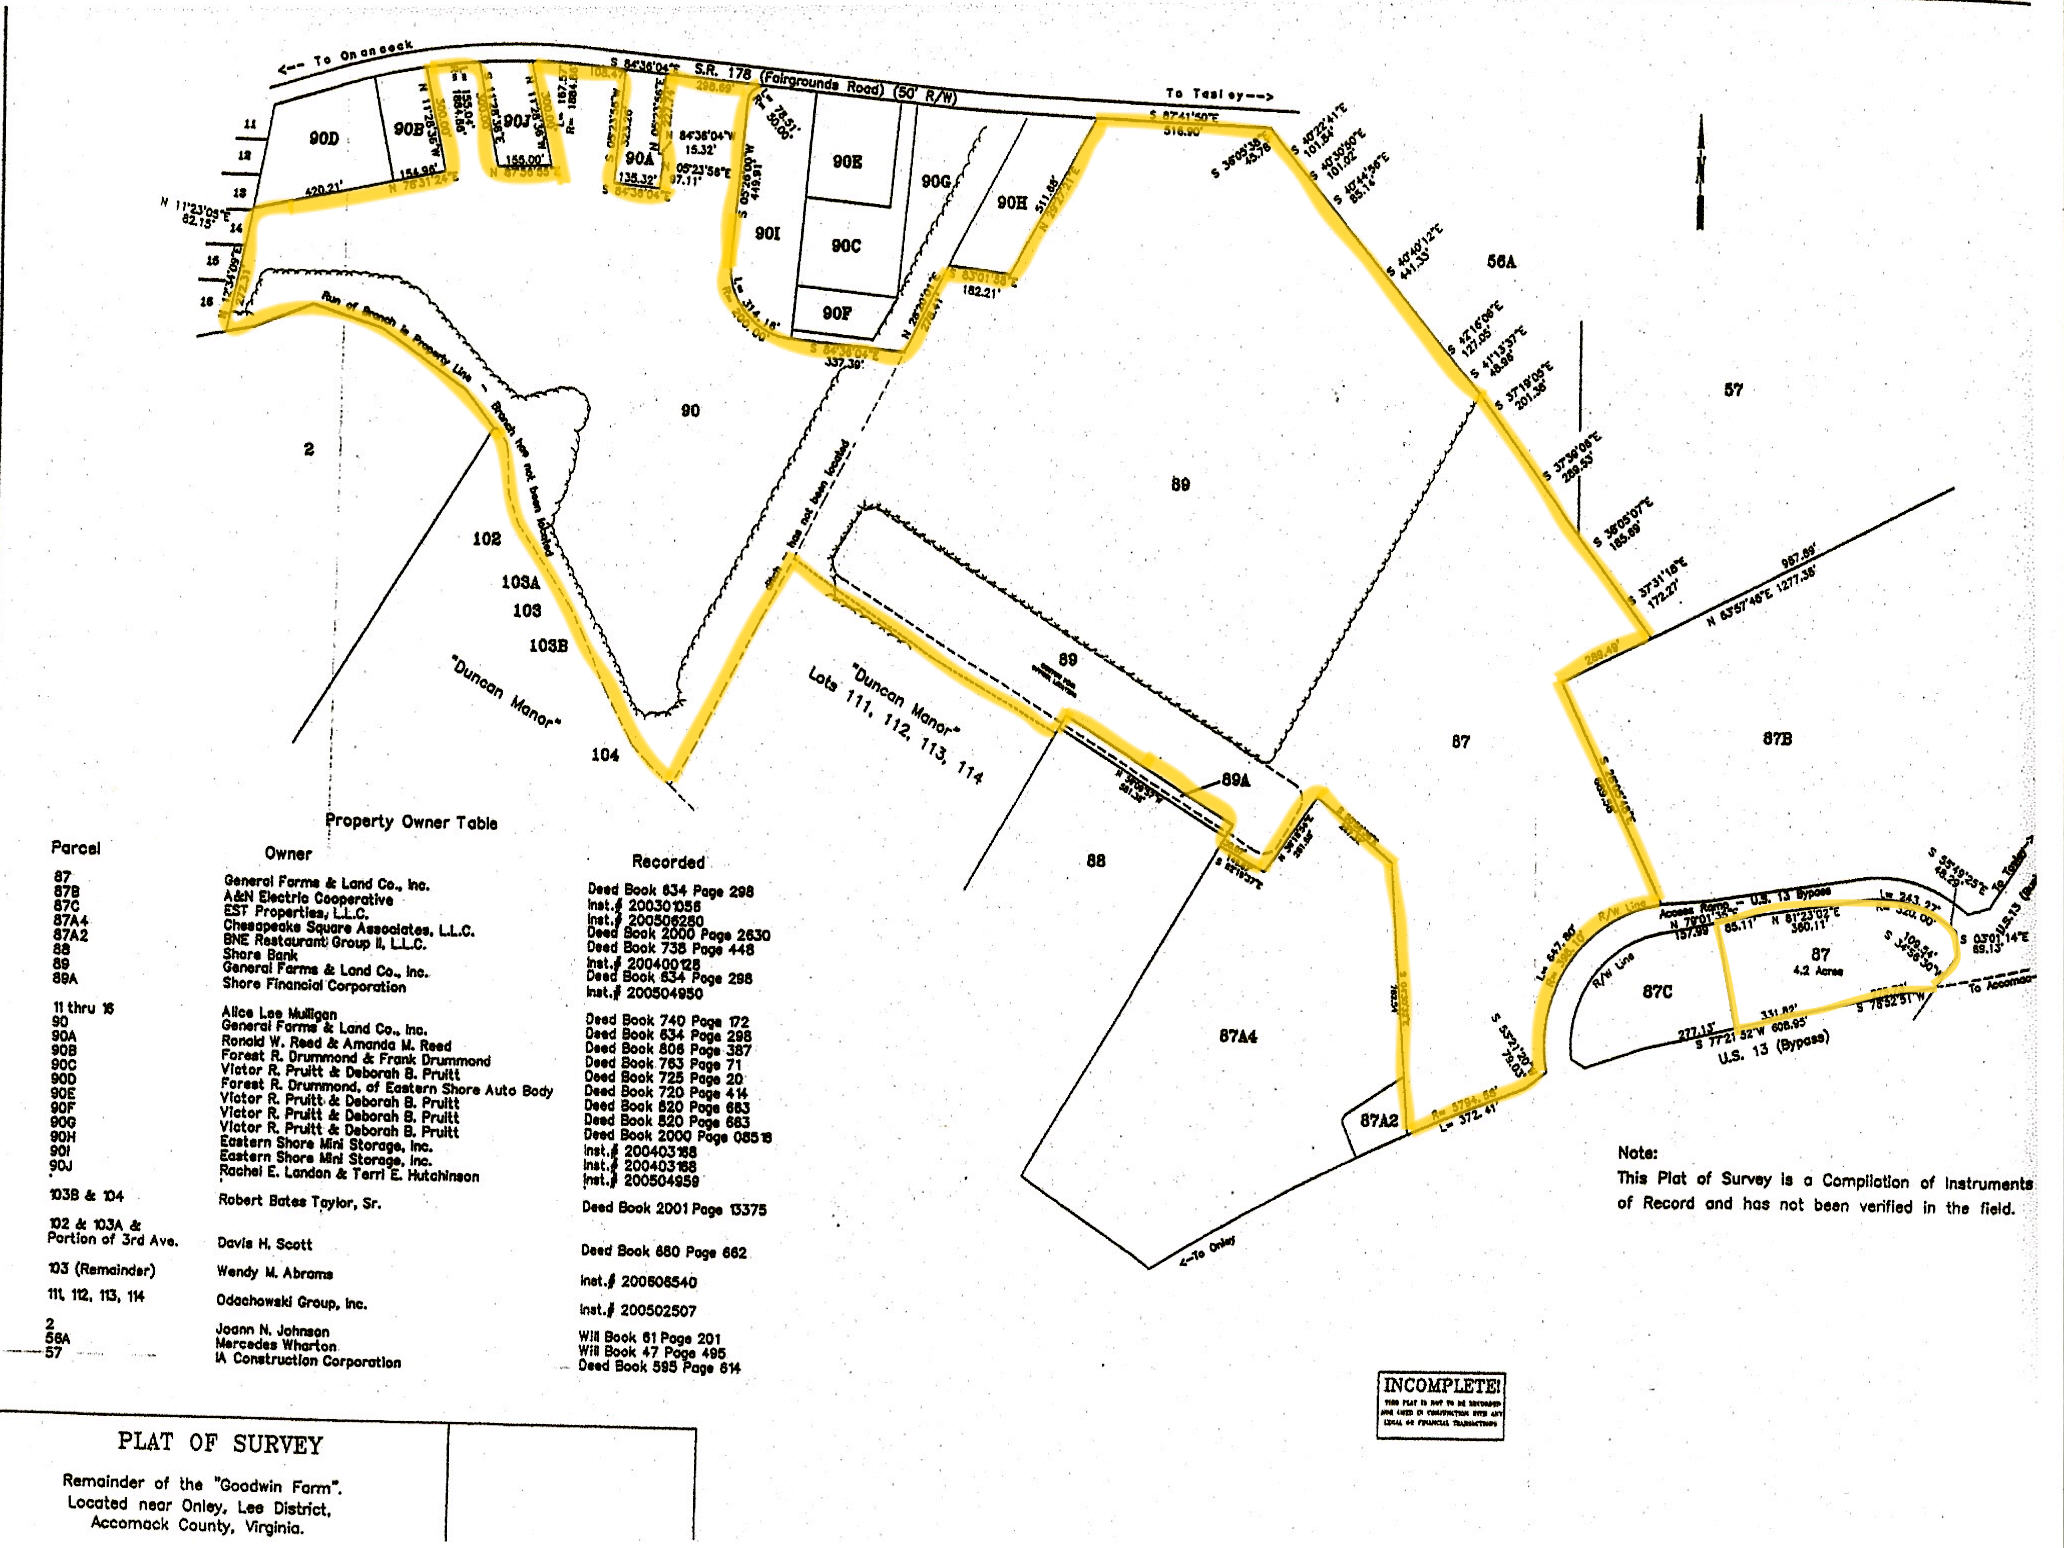 Colonial Village on fluvanna county tax maps, washington county tax maps, henry county tax maps, halifax county tax maps, surry county tax maps, powhatan county tax maps, anne arundel county tax maps, king william county tax maps, hampton county tax maps, westmoreland county tax maps, tazewell county tax maps, mecklenburg county tax maps, carroll county tax maps, henrico county tax maps, suffolk county tax maps, williamsburg county tax maps, somerset county tax maps, monongalia county tax maps, wise county tax maps, rappahannock county tax maps,